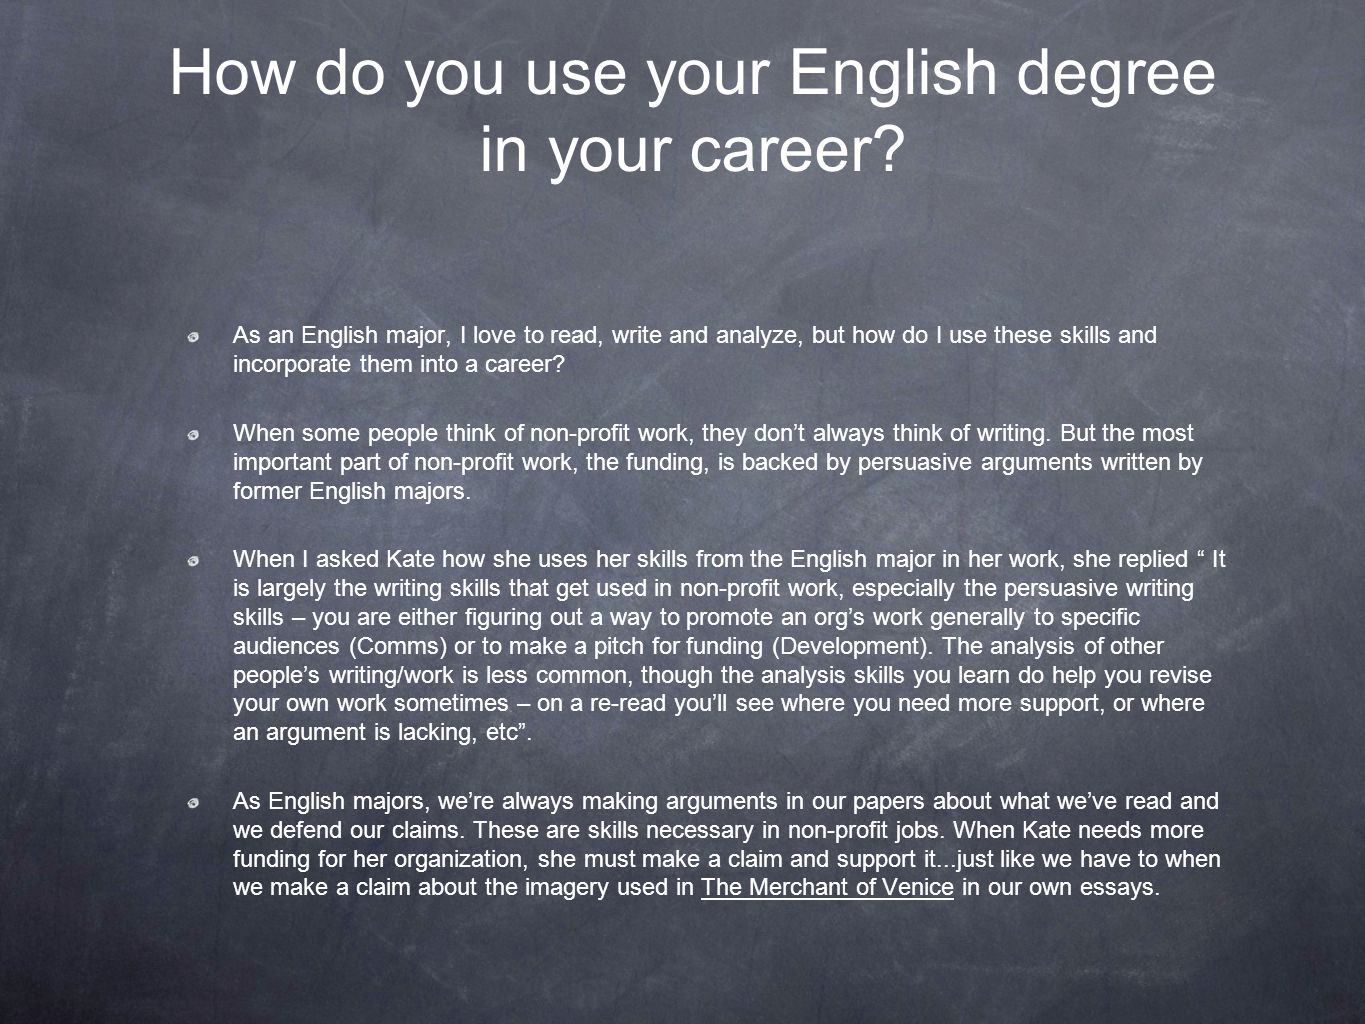 How do you use your English degree in your career